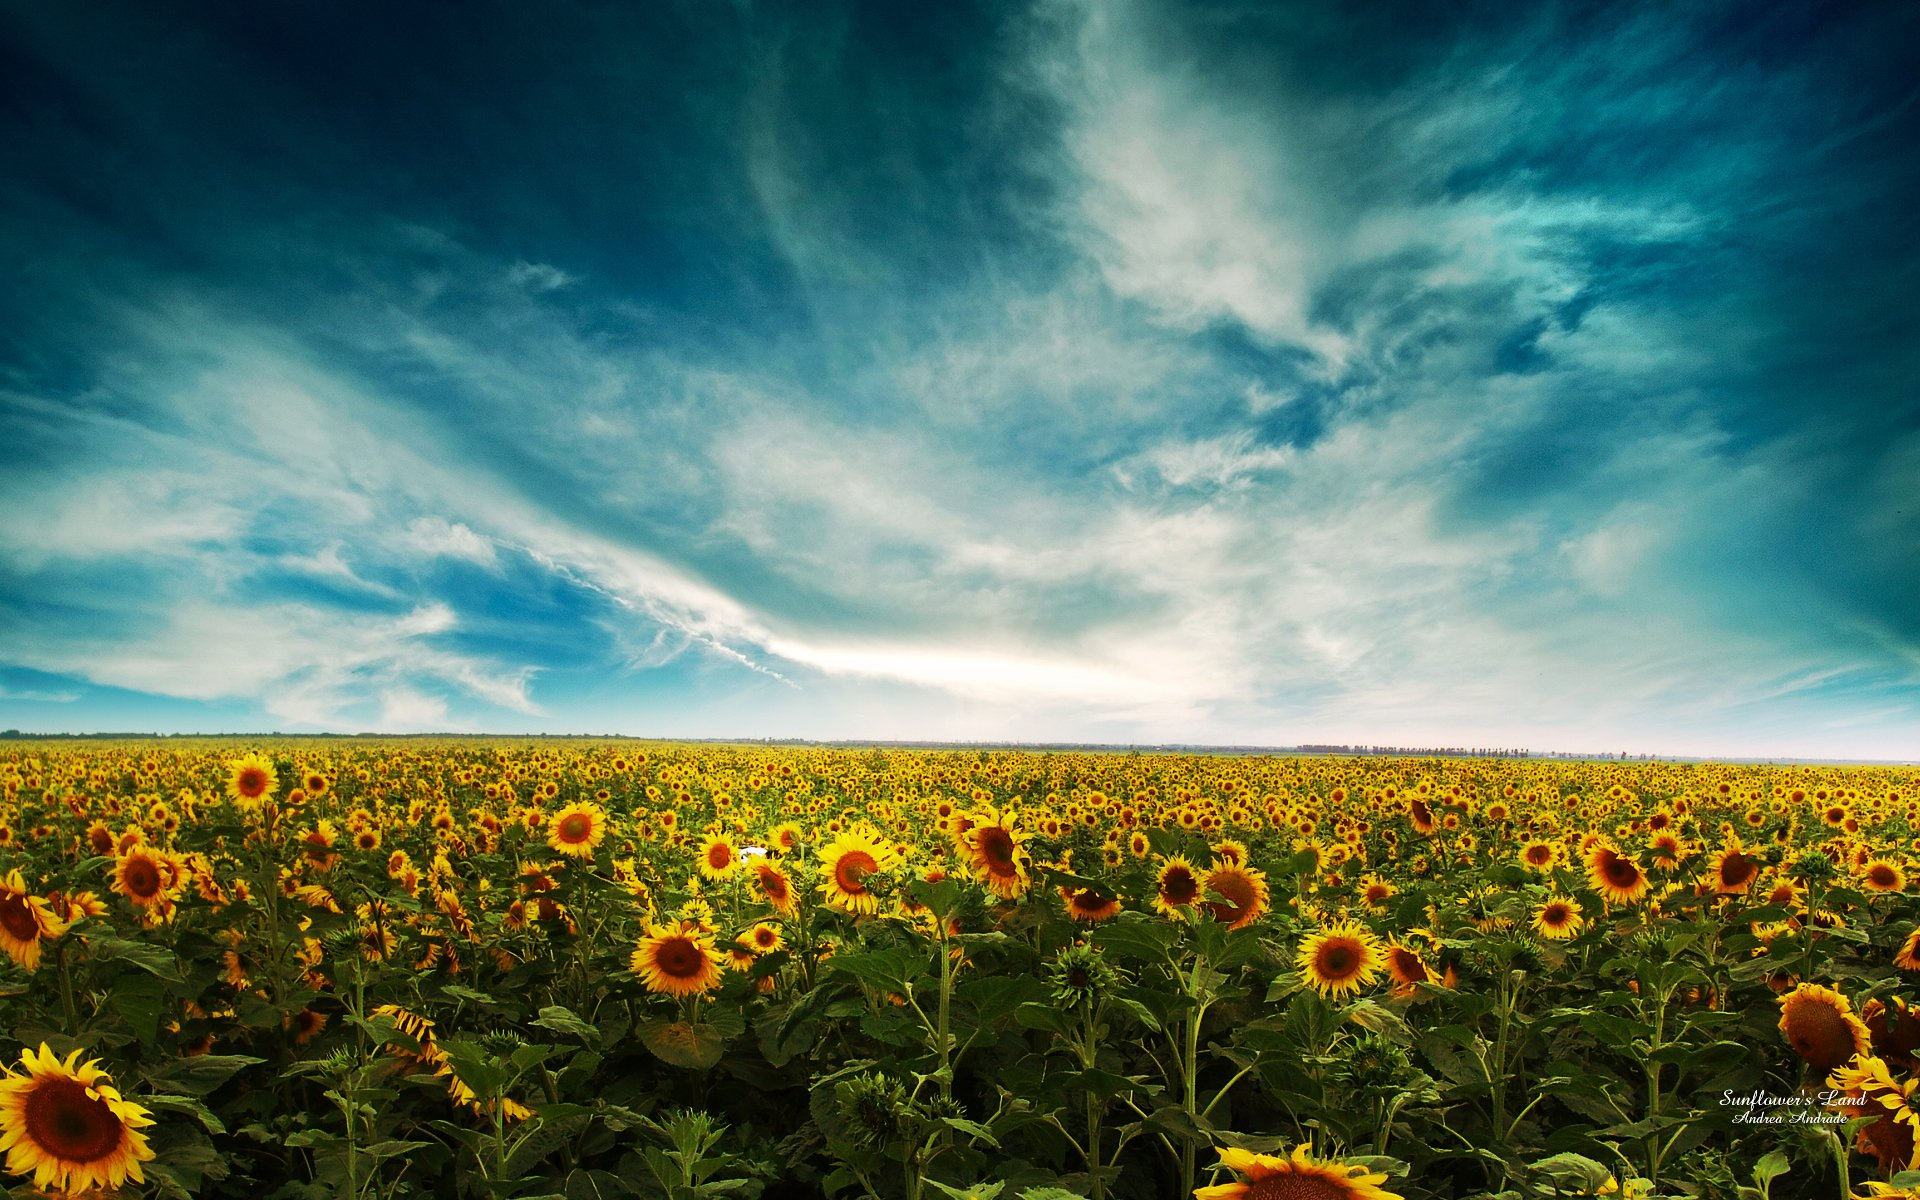 Field Of Sunflowers wallpaper   42059 1920x1200